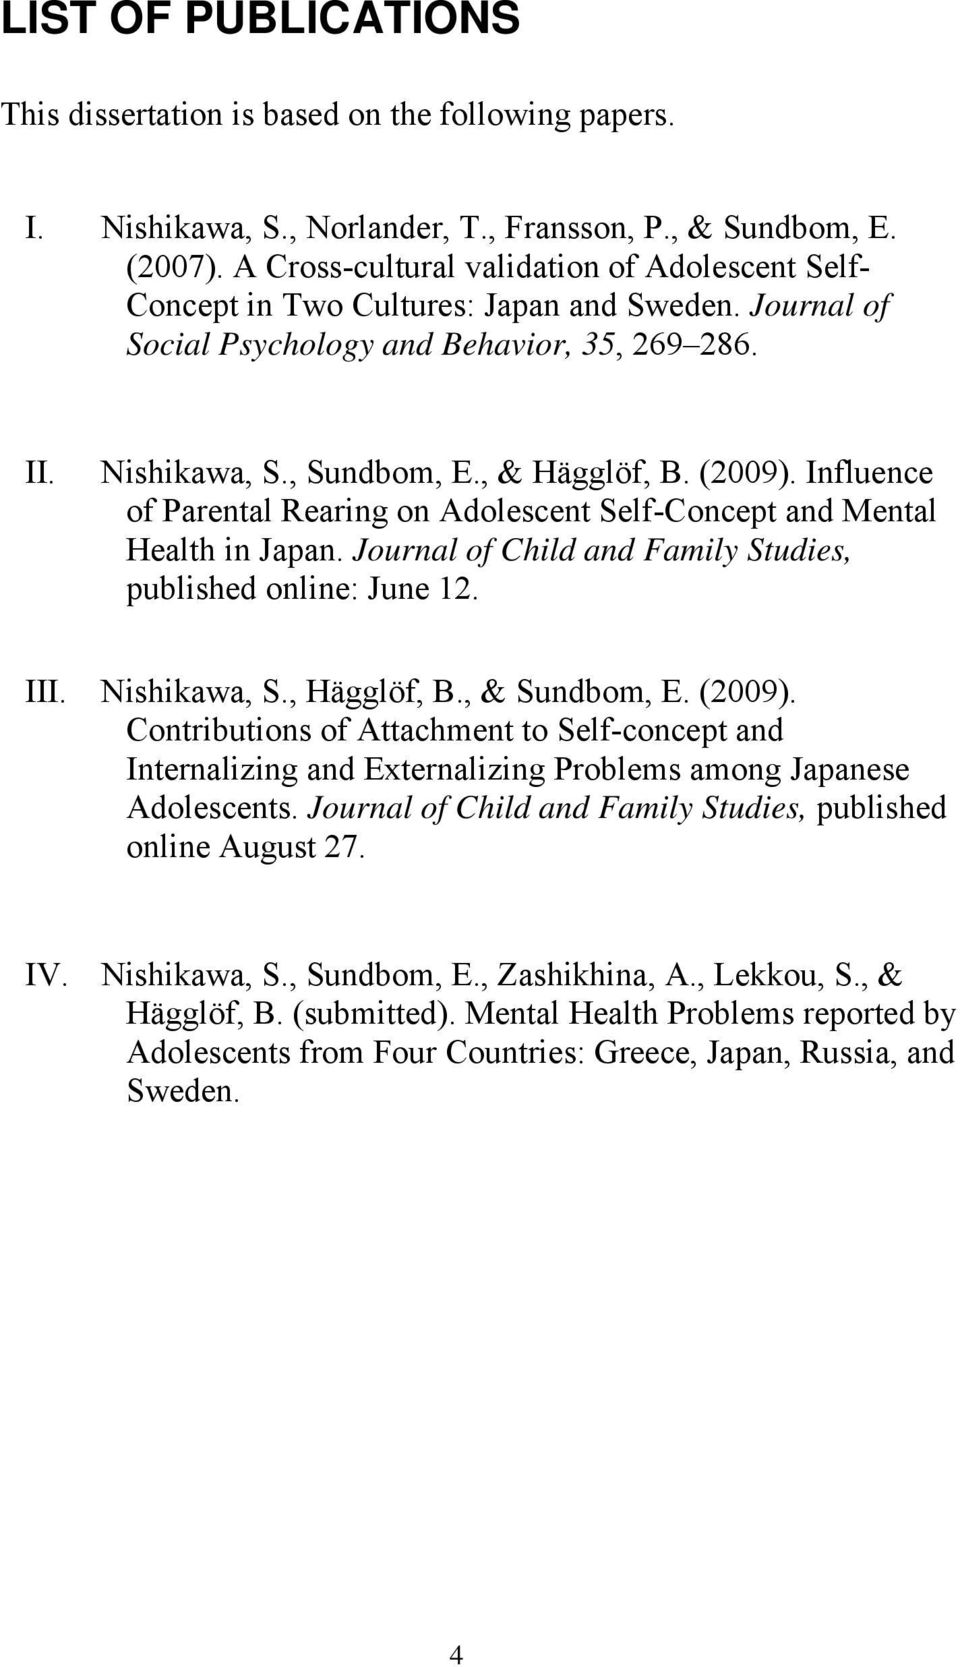 Influence of Parental Rearing on Adolescent Self-Concept and Mental Health in Japan. Journal of Child and Family Studies, published online: June 12. III. Nishikawa, S., Hägglöf, B., & Sundbom, E.